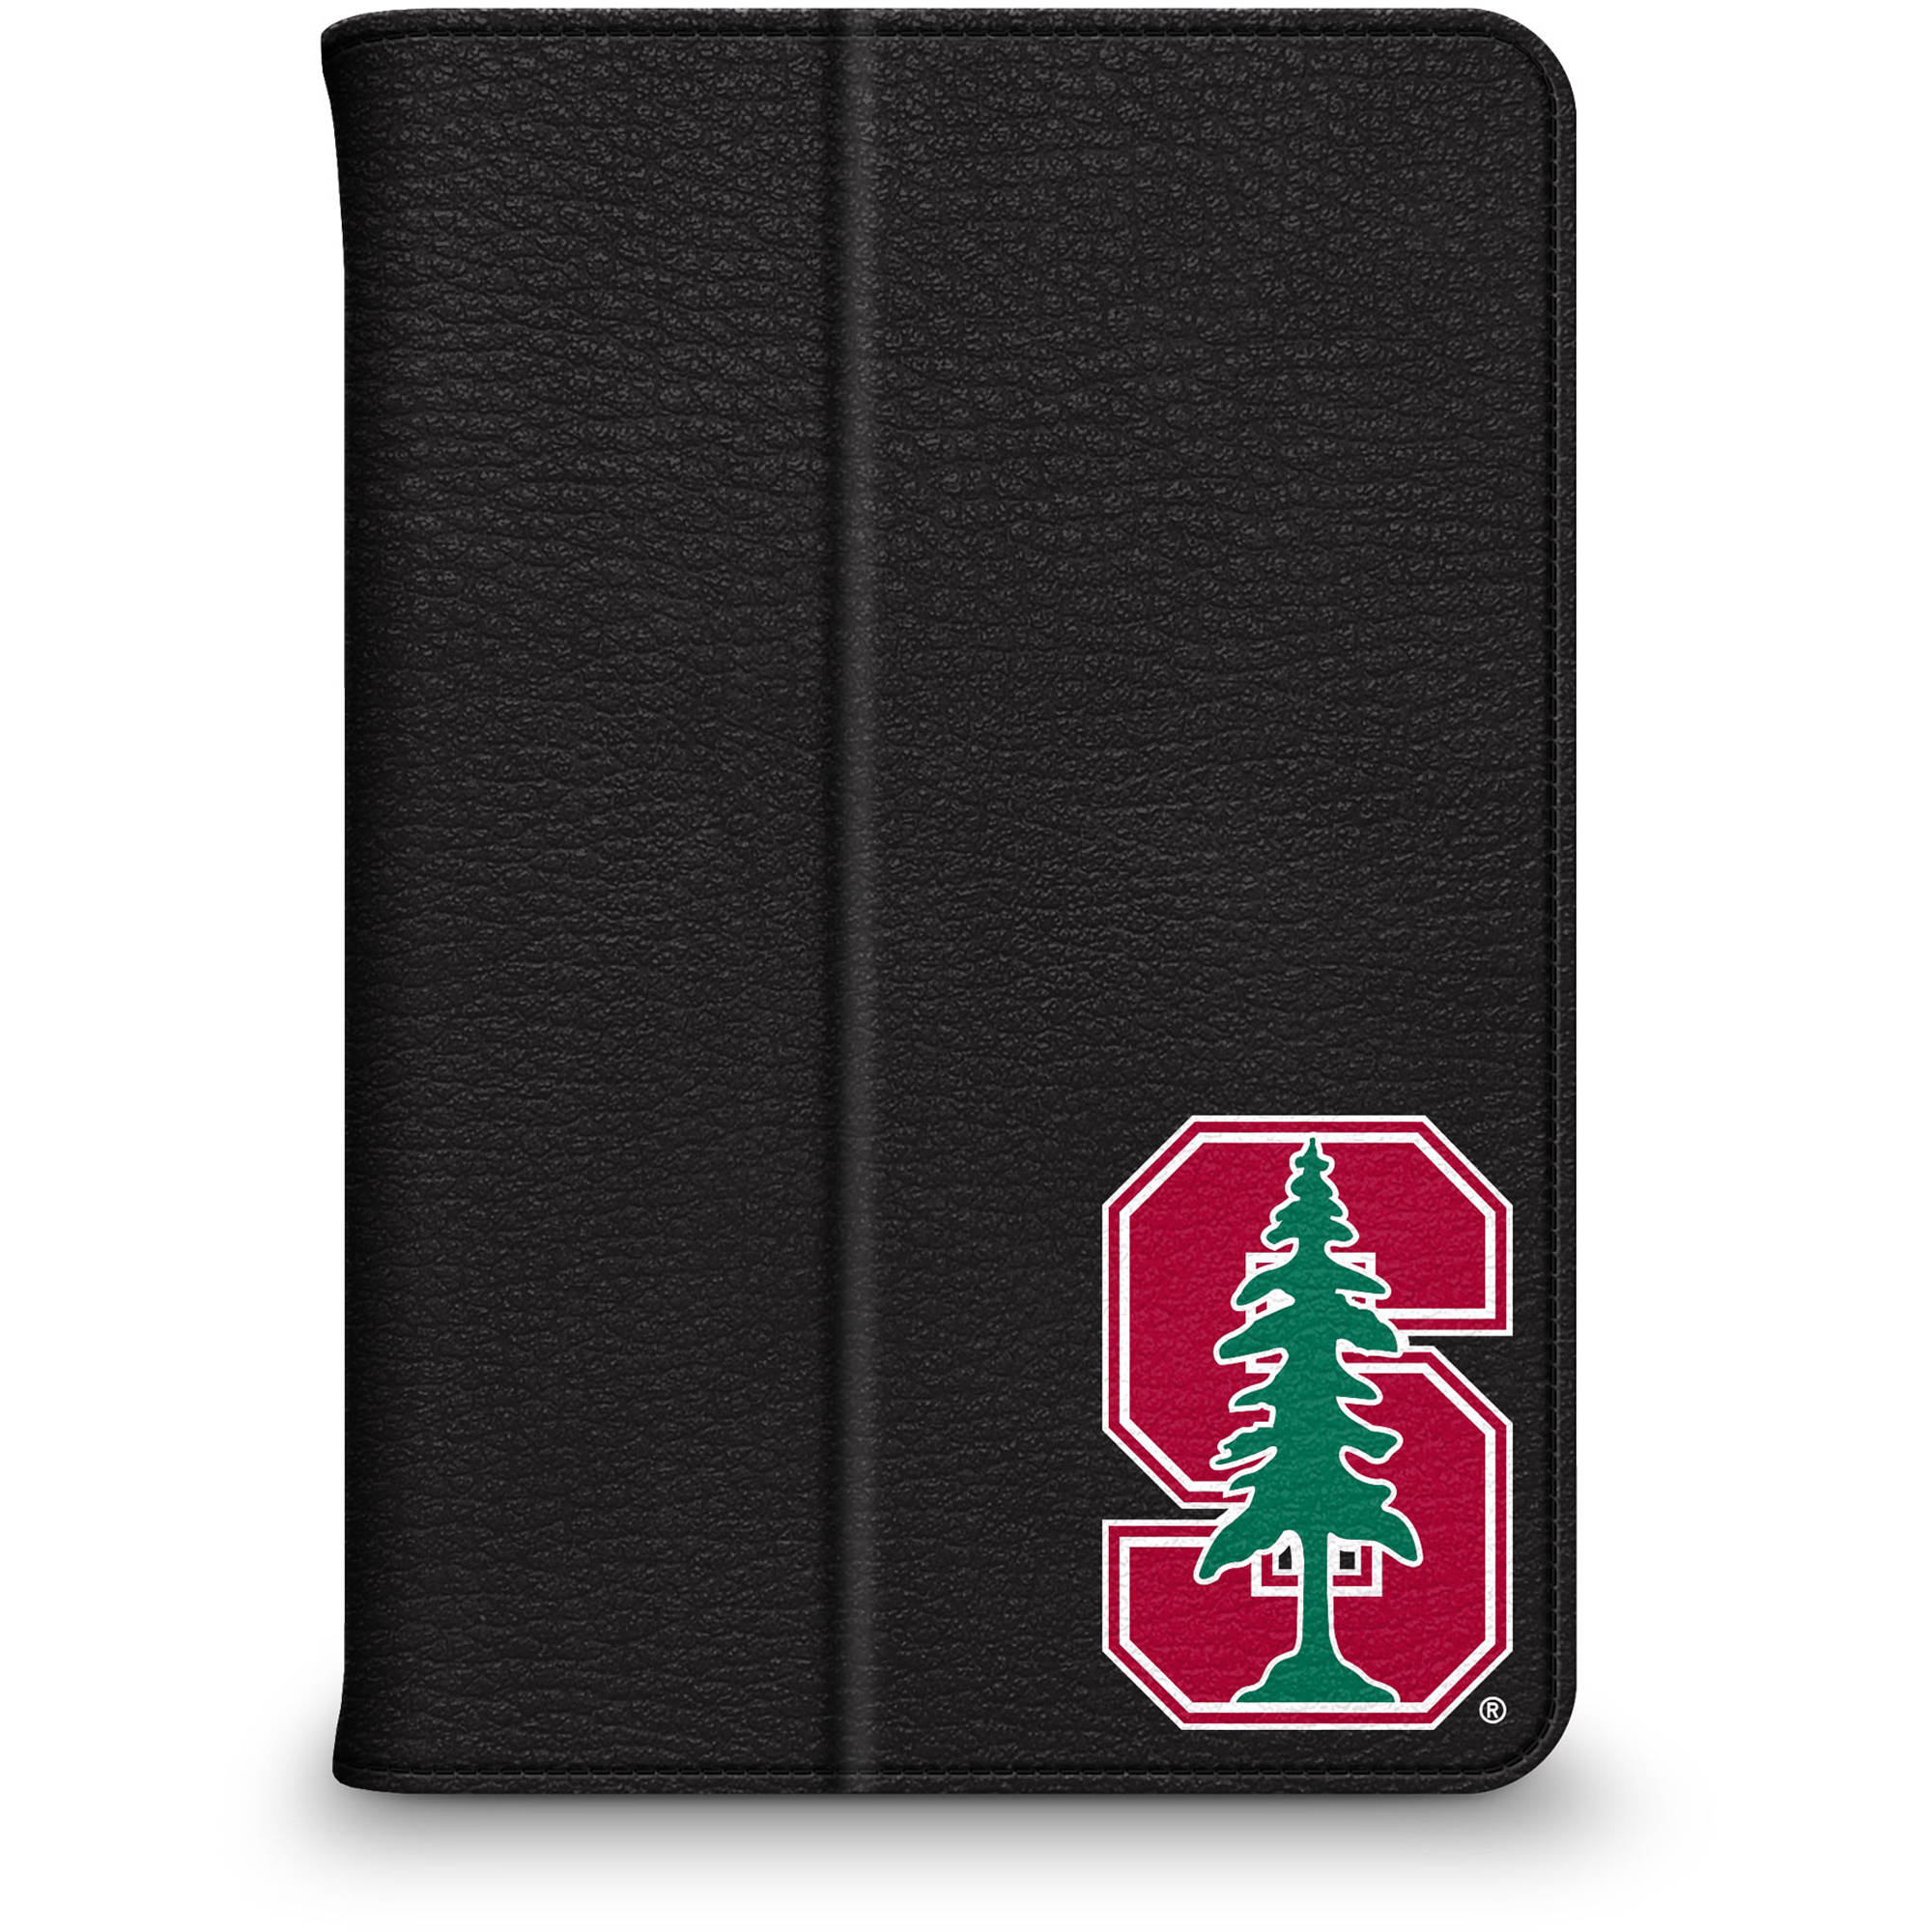 Apple iPad mini Leather Folio Case, Stanford University